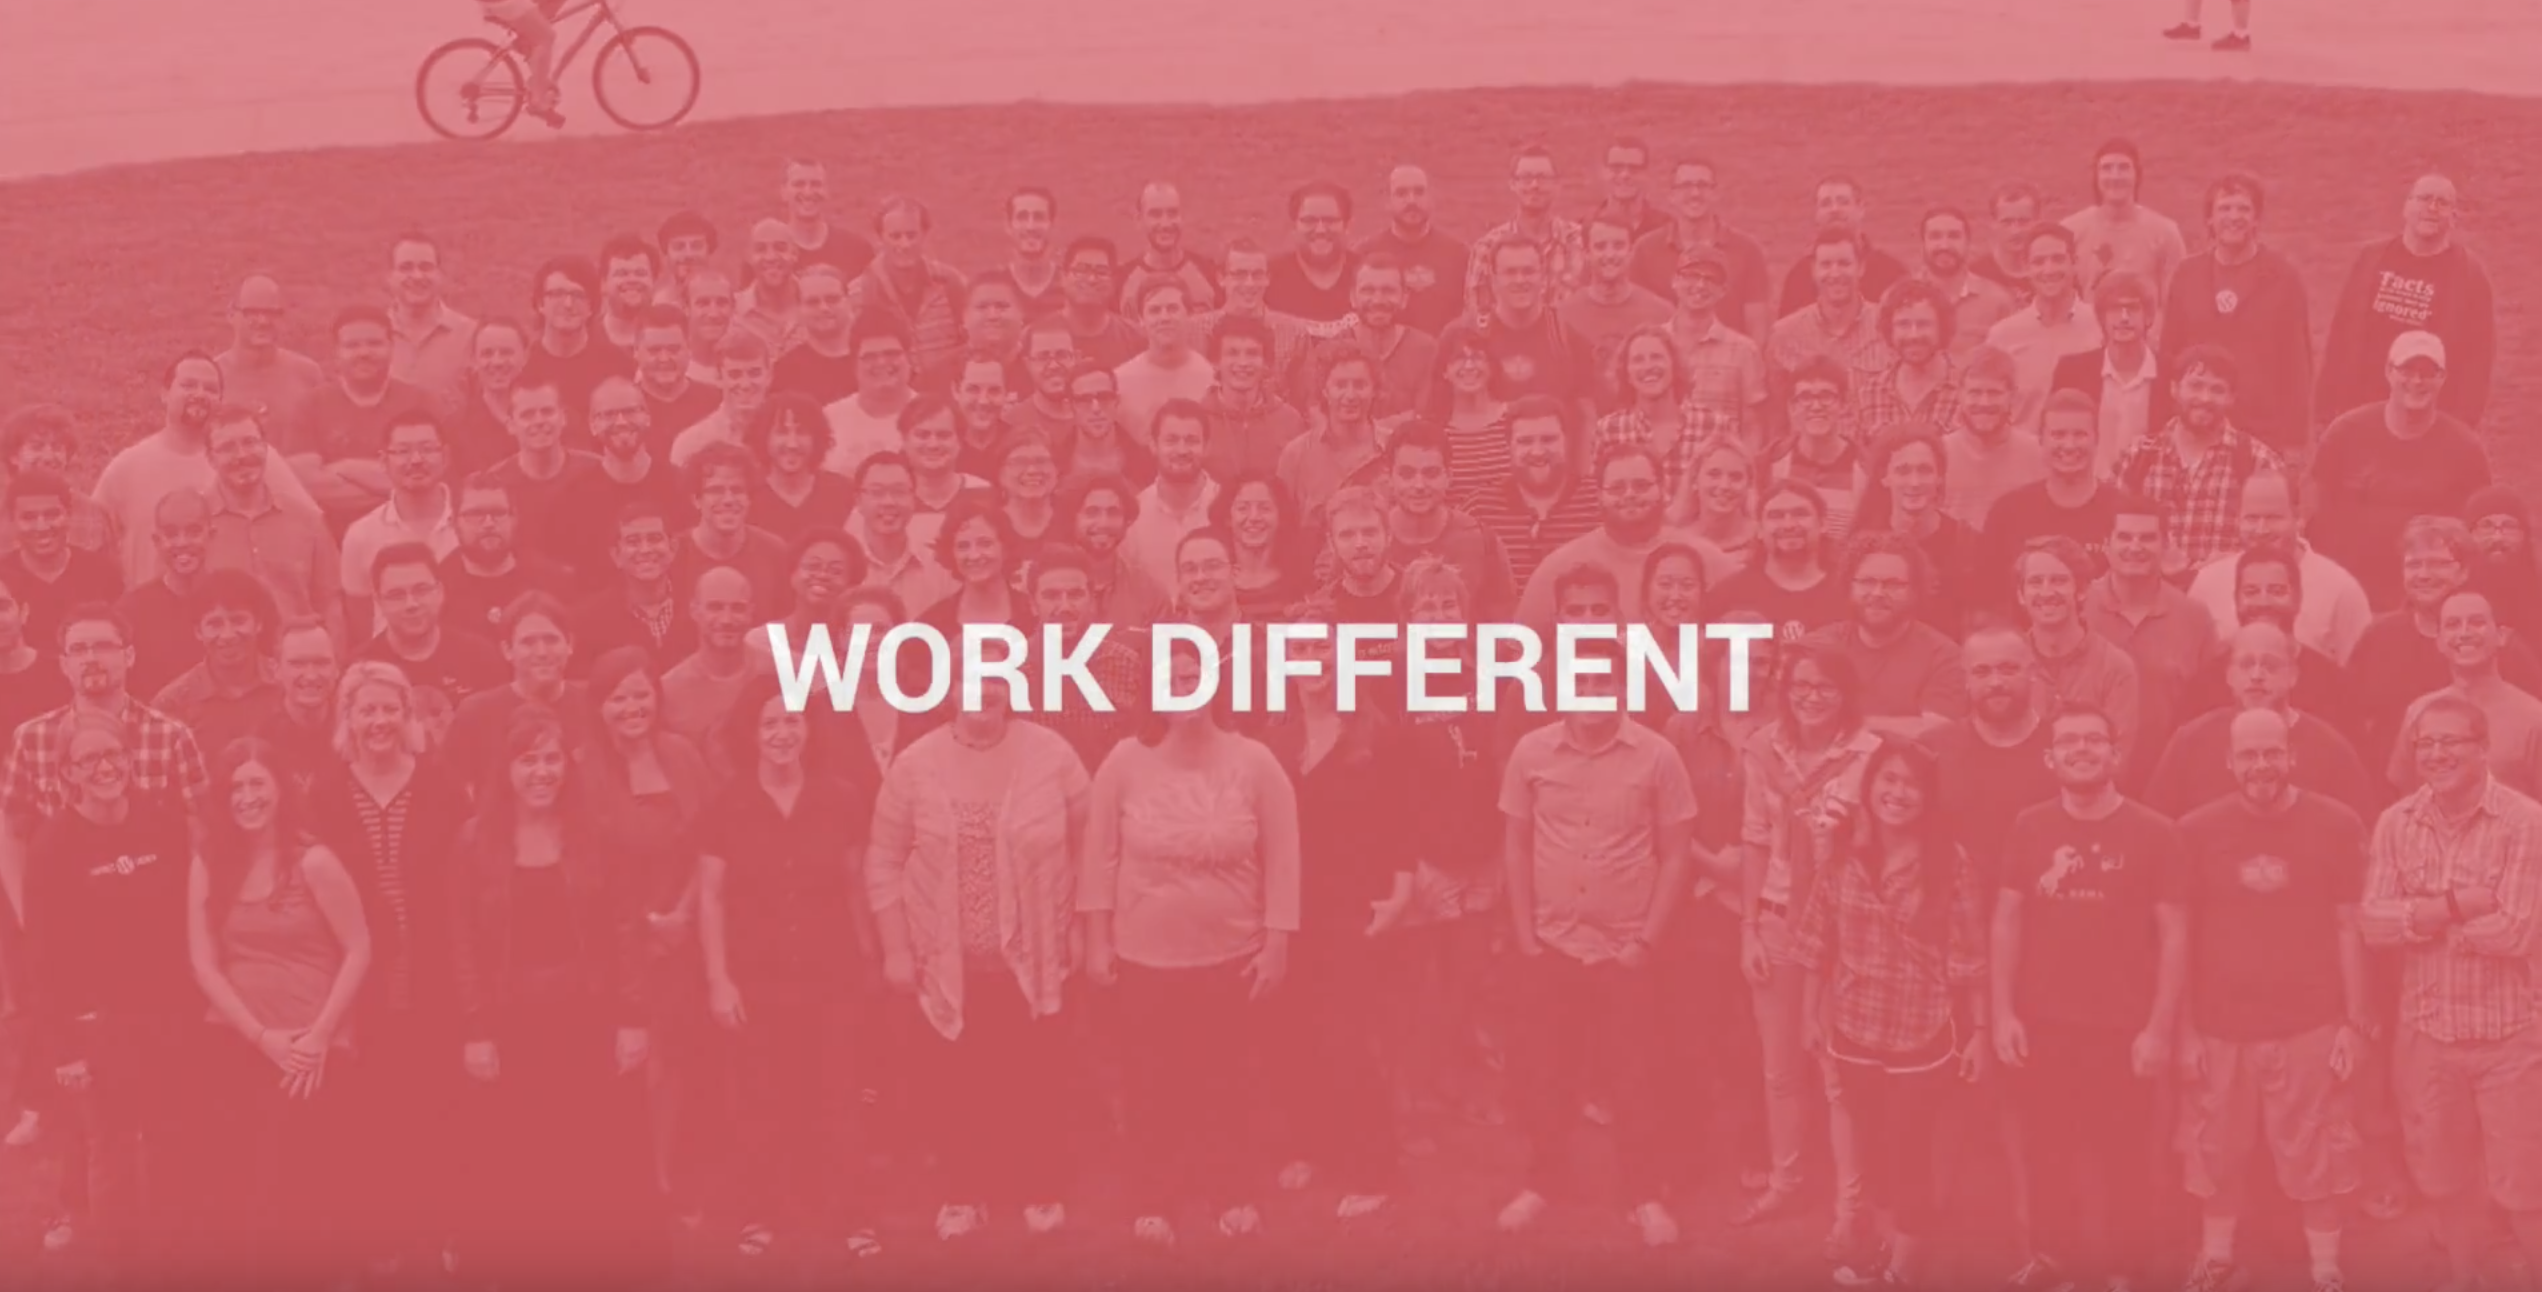 WorkDifferent helps you find a tech job with a company that cares about its employees